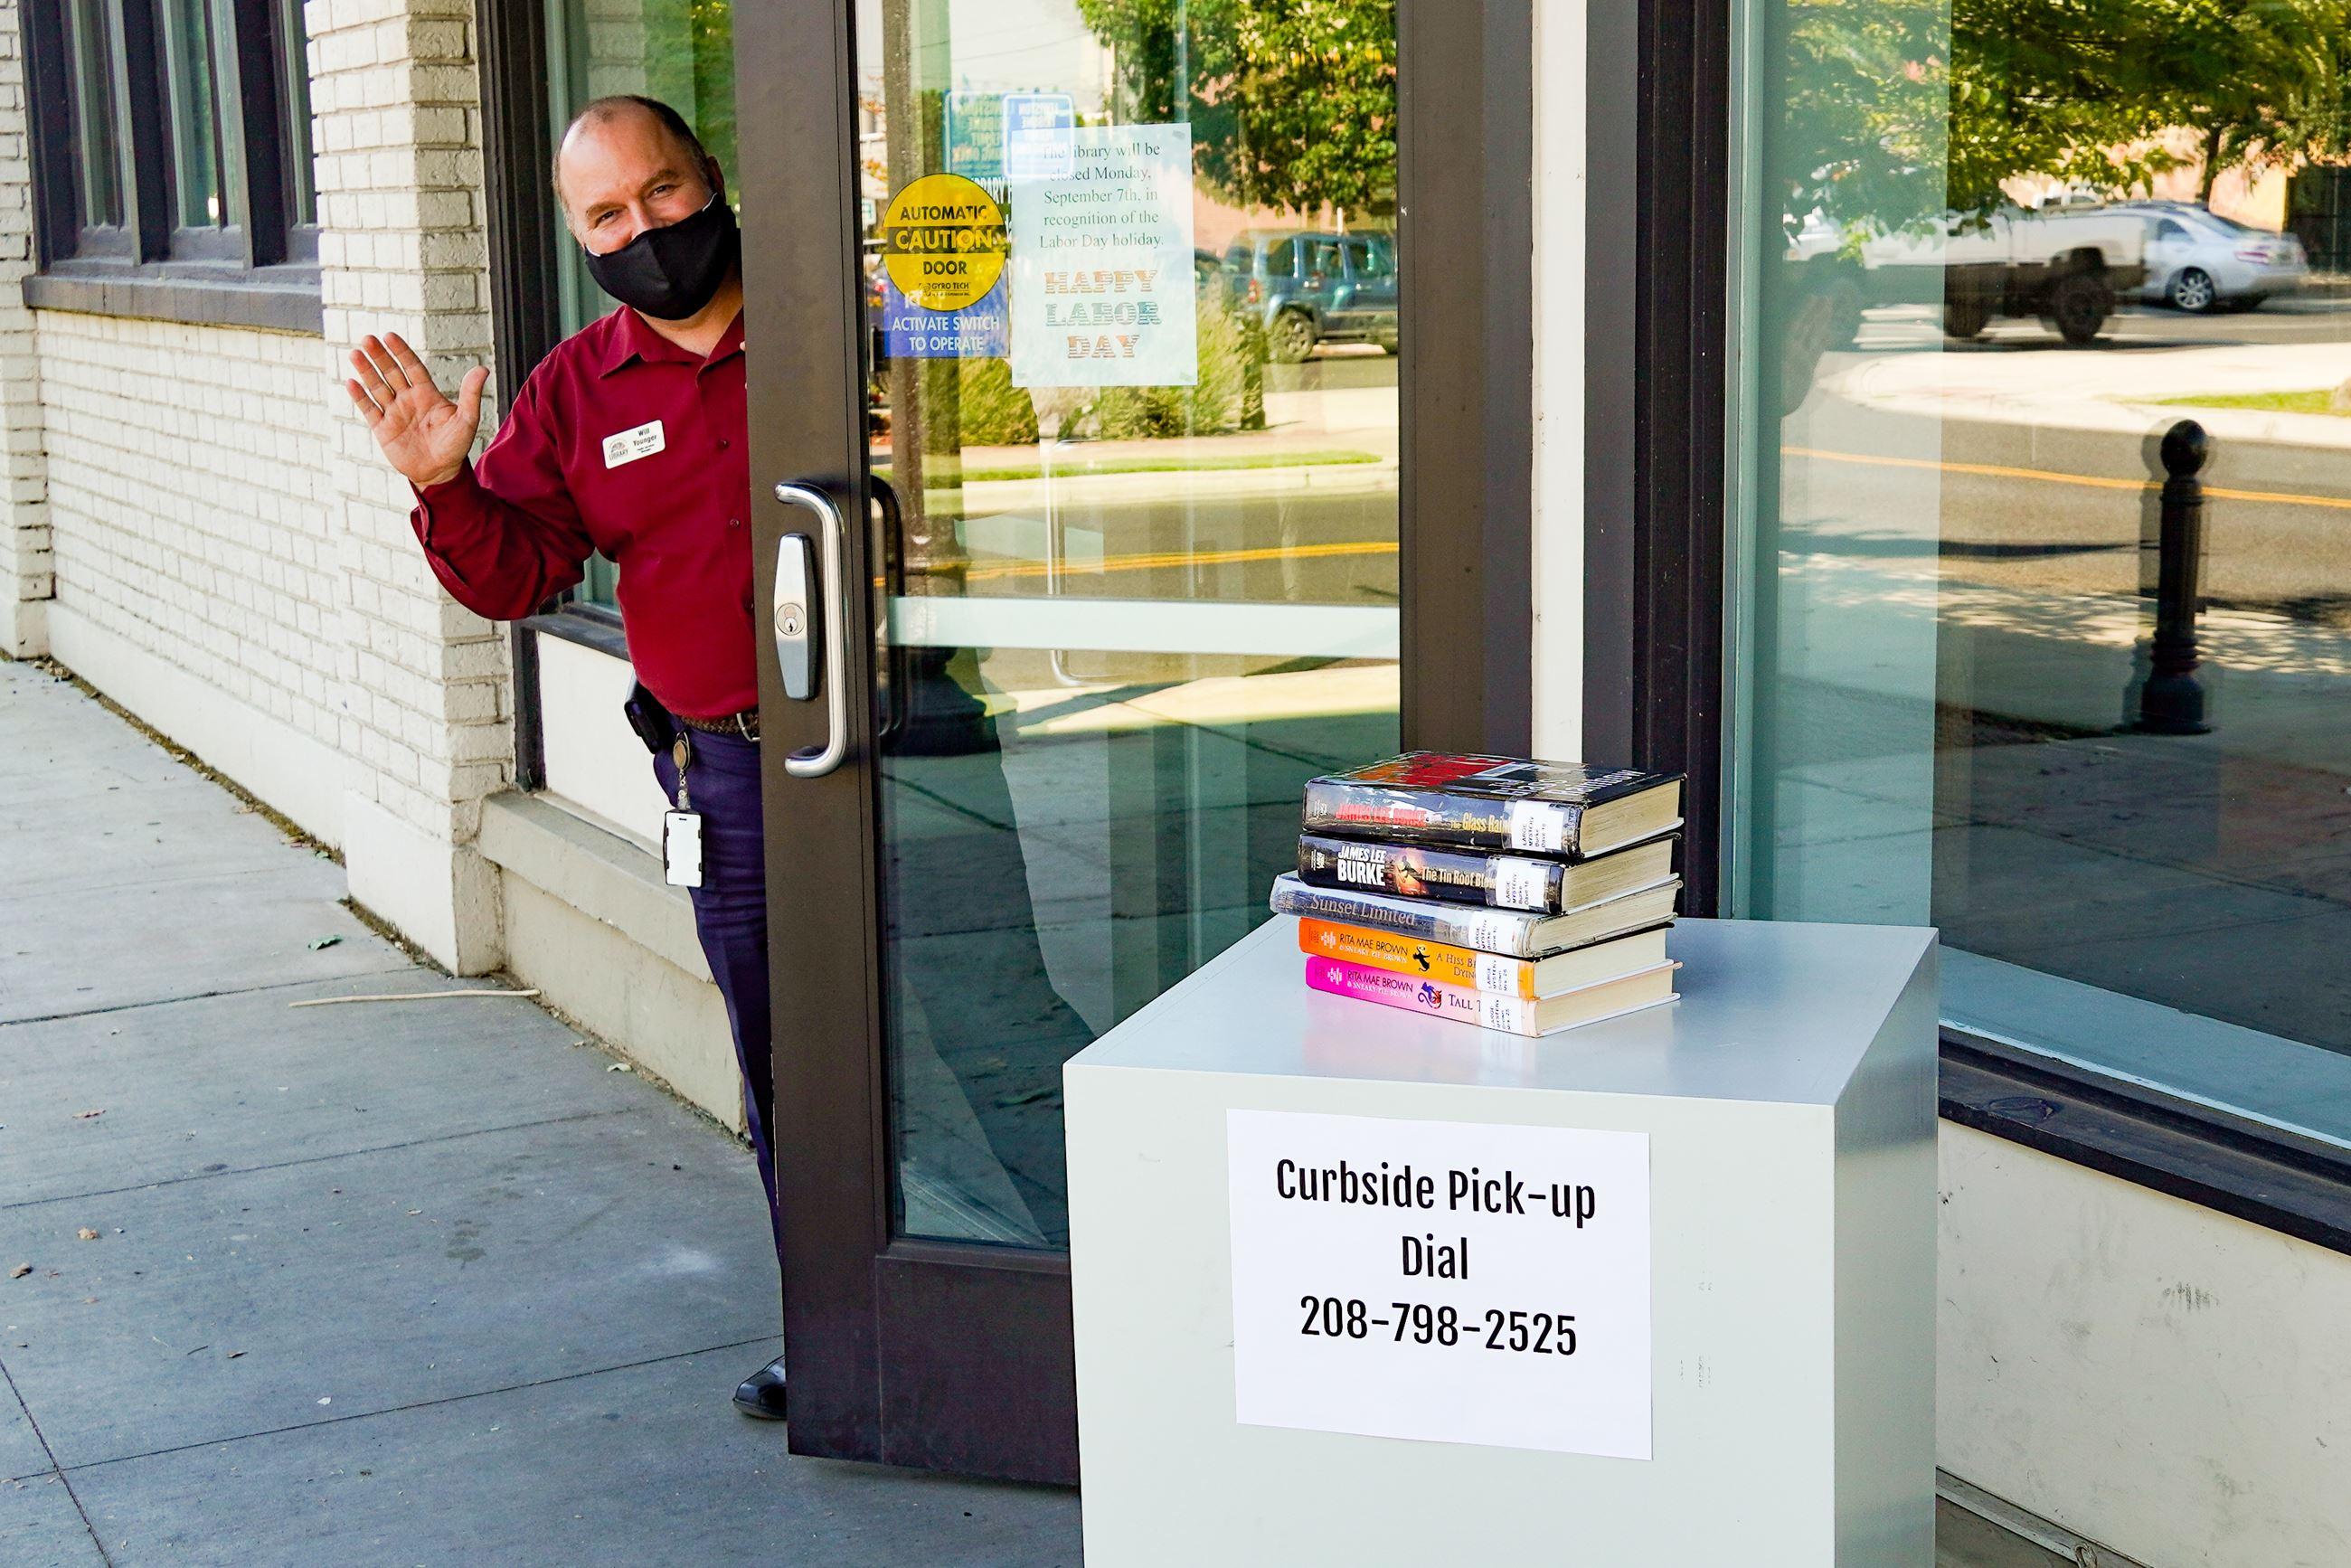 Public Services Manager brings books to curbside pick-up